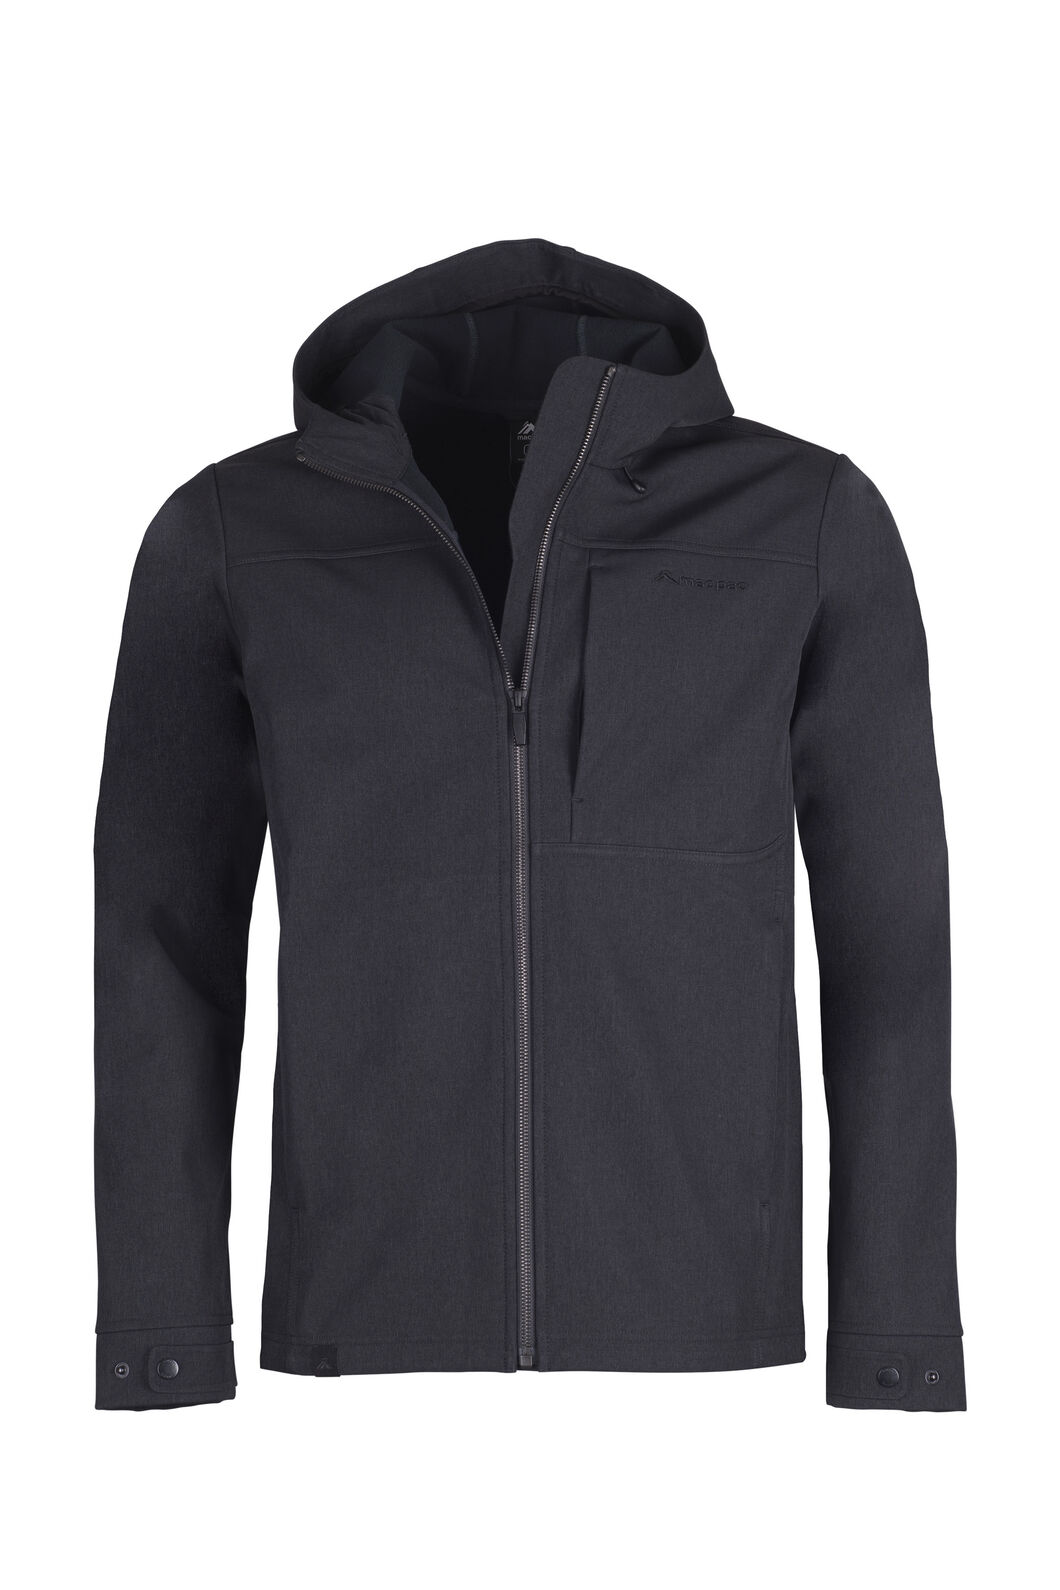 Macpac Chord Hooded Softshell Jacket - Men's, Black, hi-res